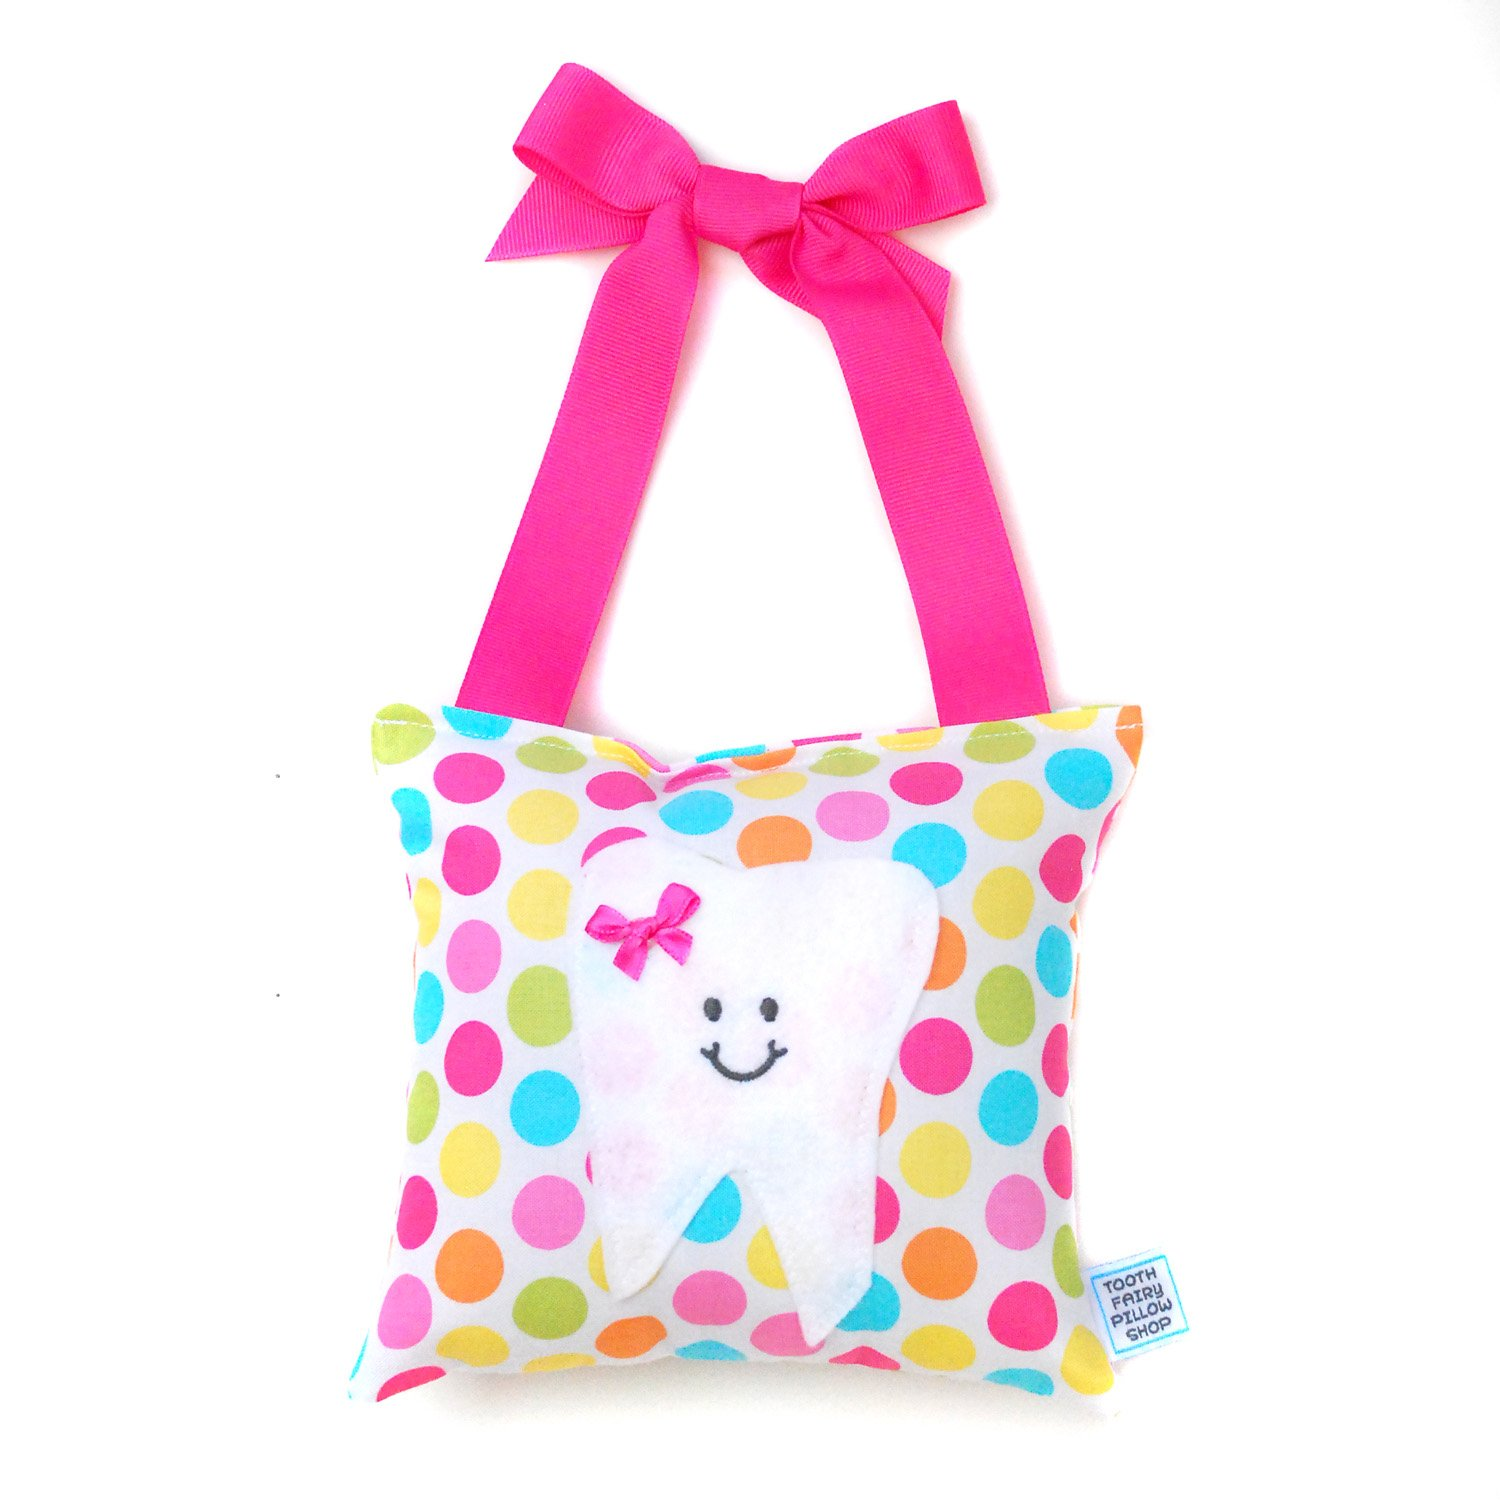 Girl's Tooth Fairy Pillow in Polka Dot Print Cotton